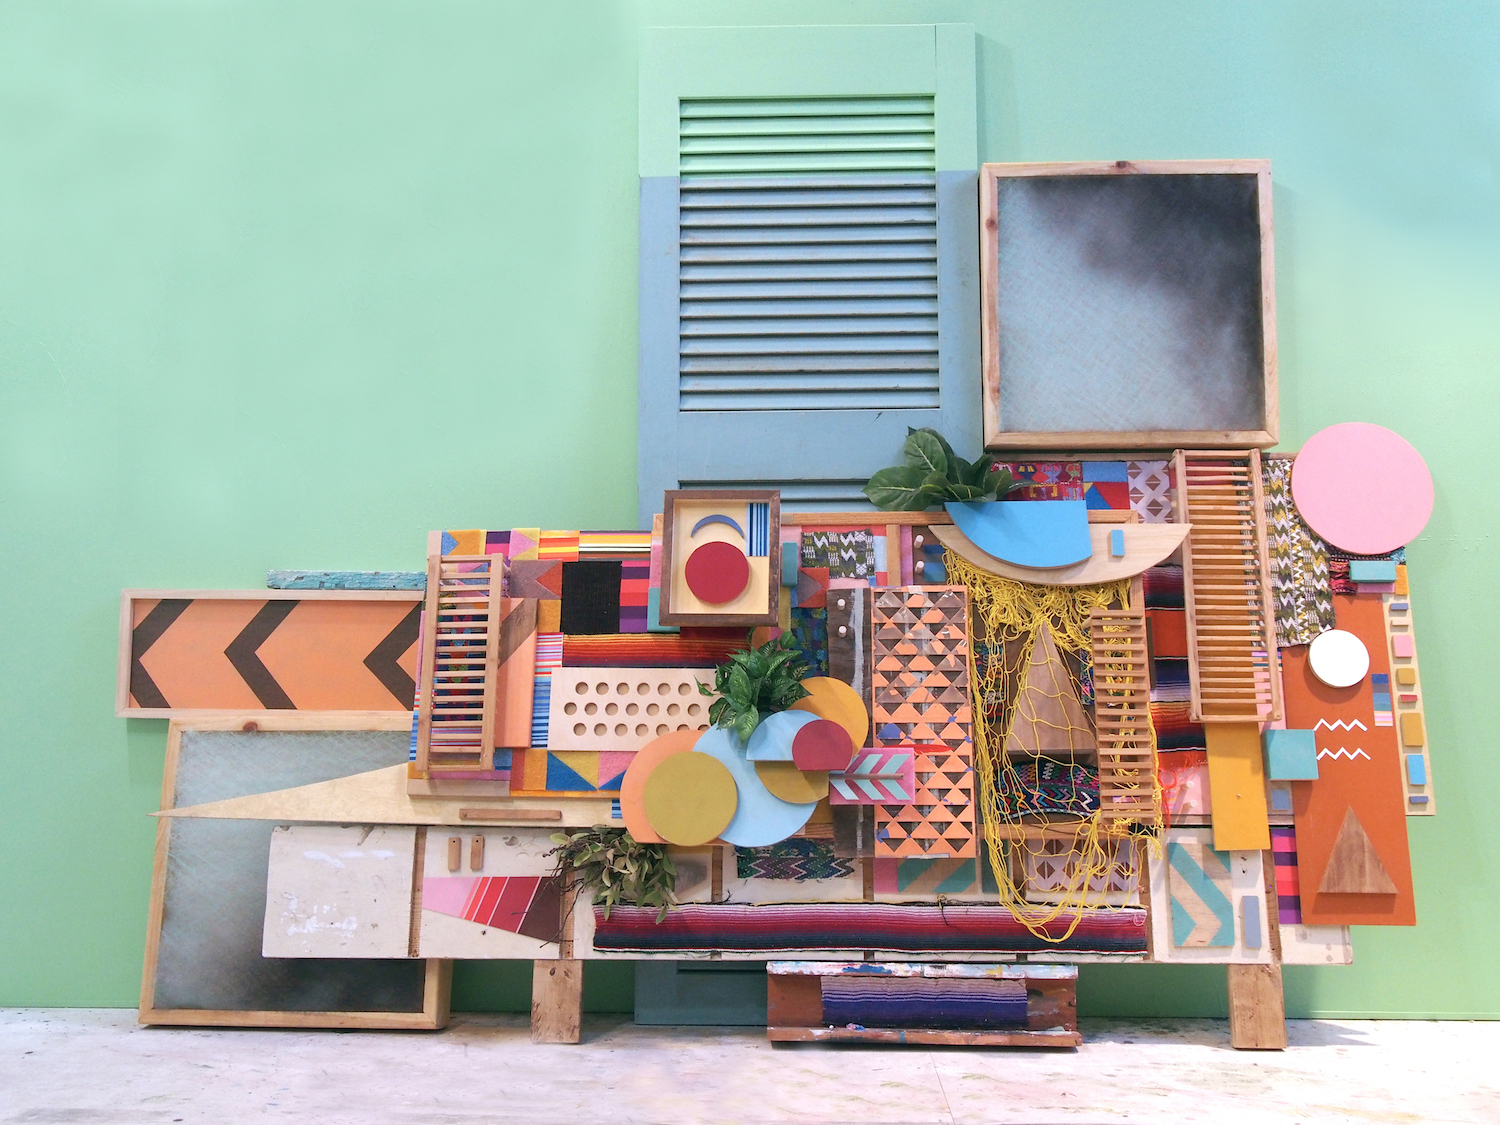 100x156x20 , wood, metal, paper, scouring pads, Guatemalan textiles, woven serape blanket, net, thread, stain, plastic stencil, acrylic paint, air filters, found items, artificial plants, 100 x 156 x 20 inches